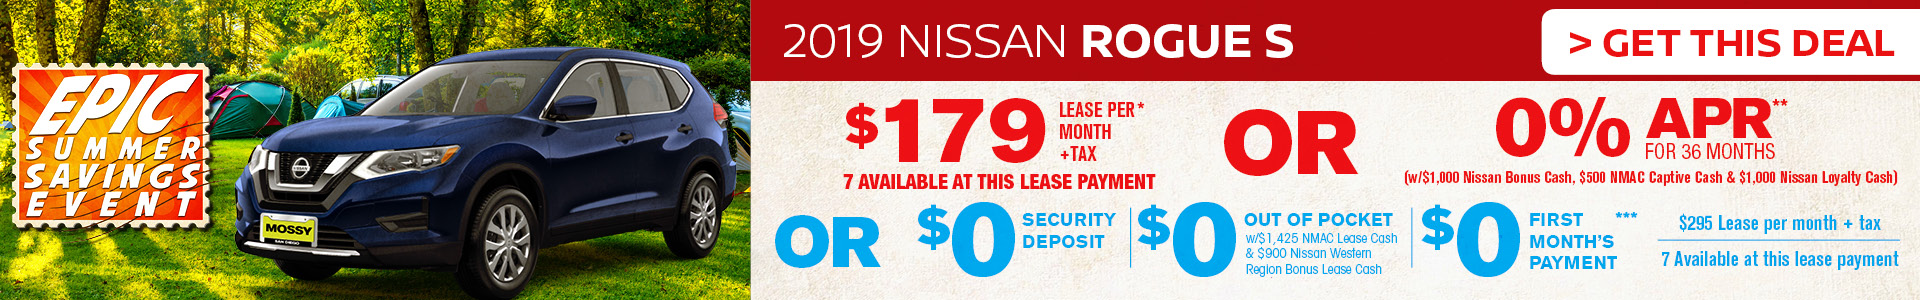 Mossy Nissan - Nissan Rogue $179 Lease